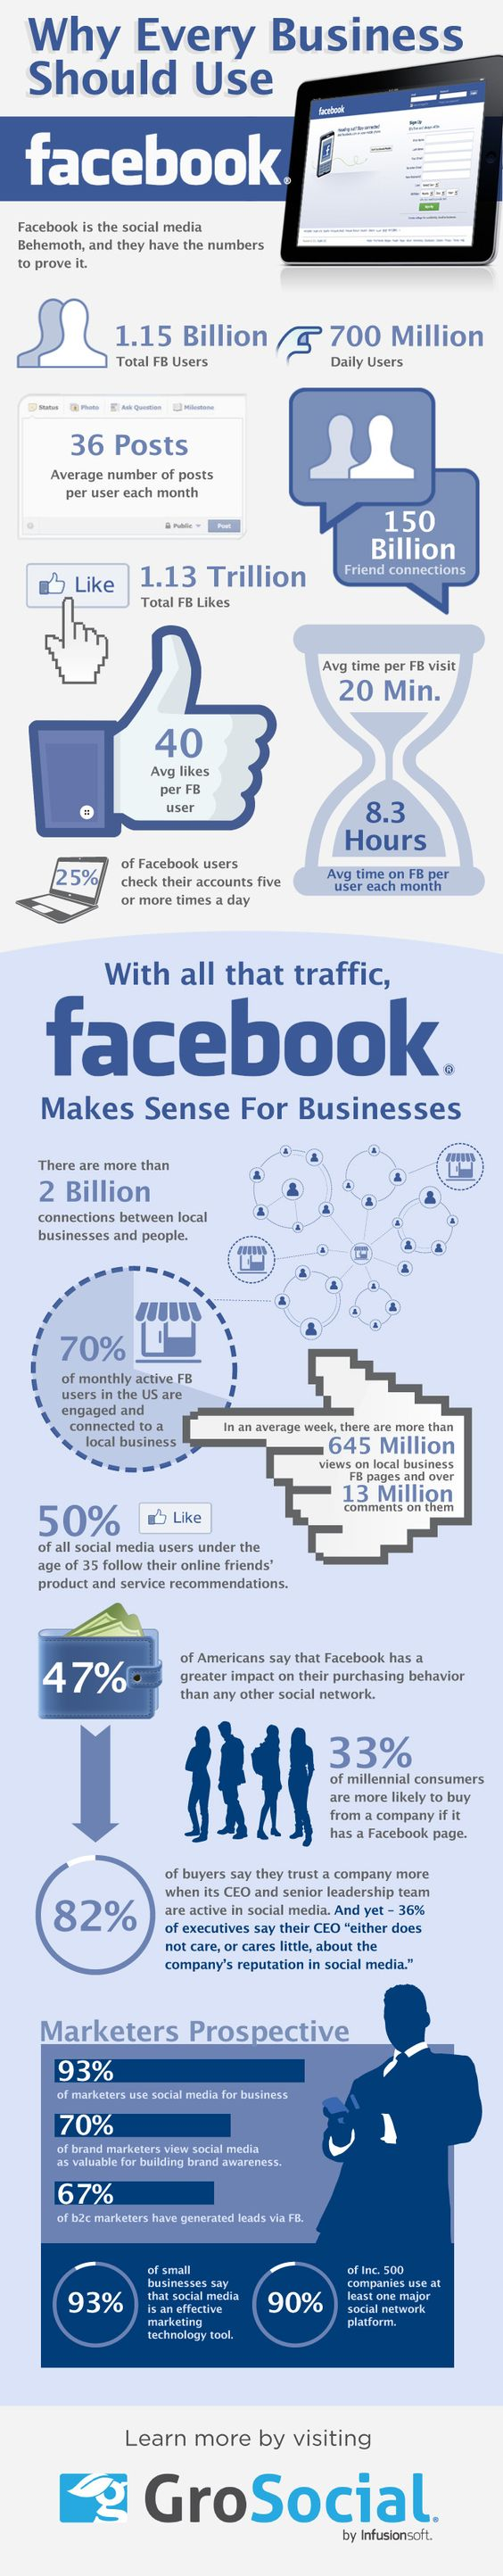 Why Every #Business Should Use #Facebook